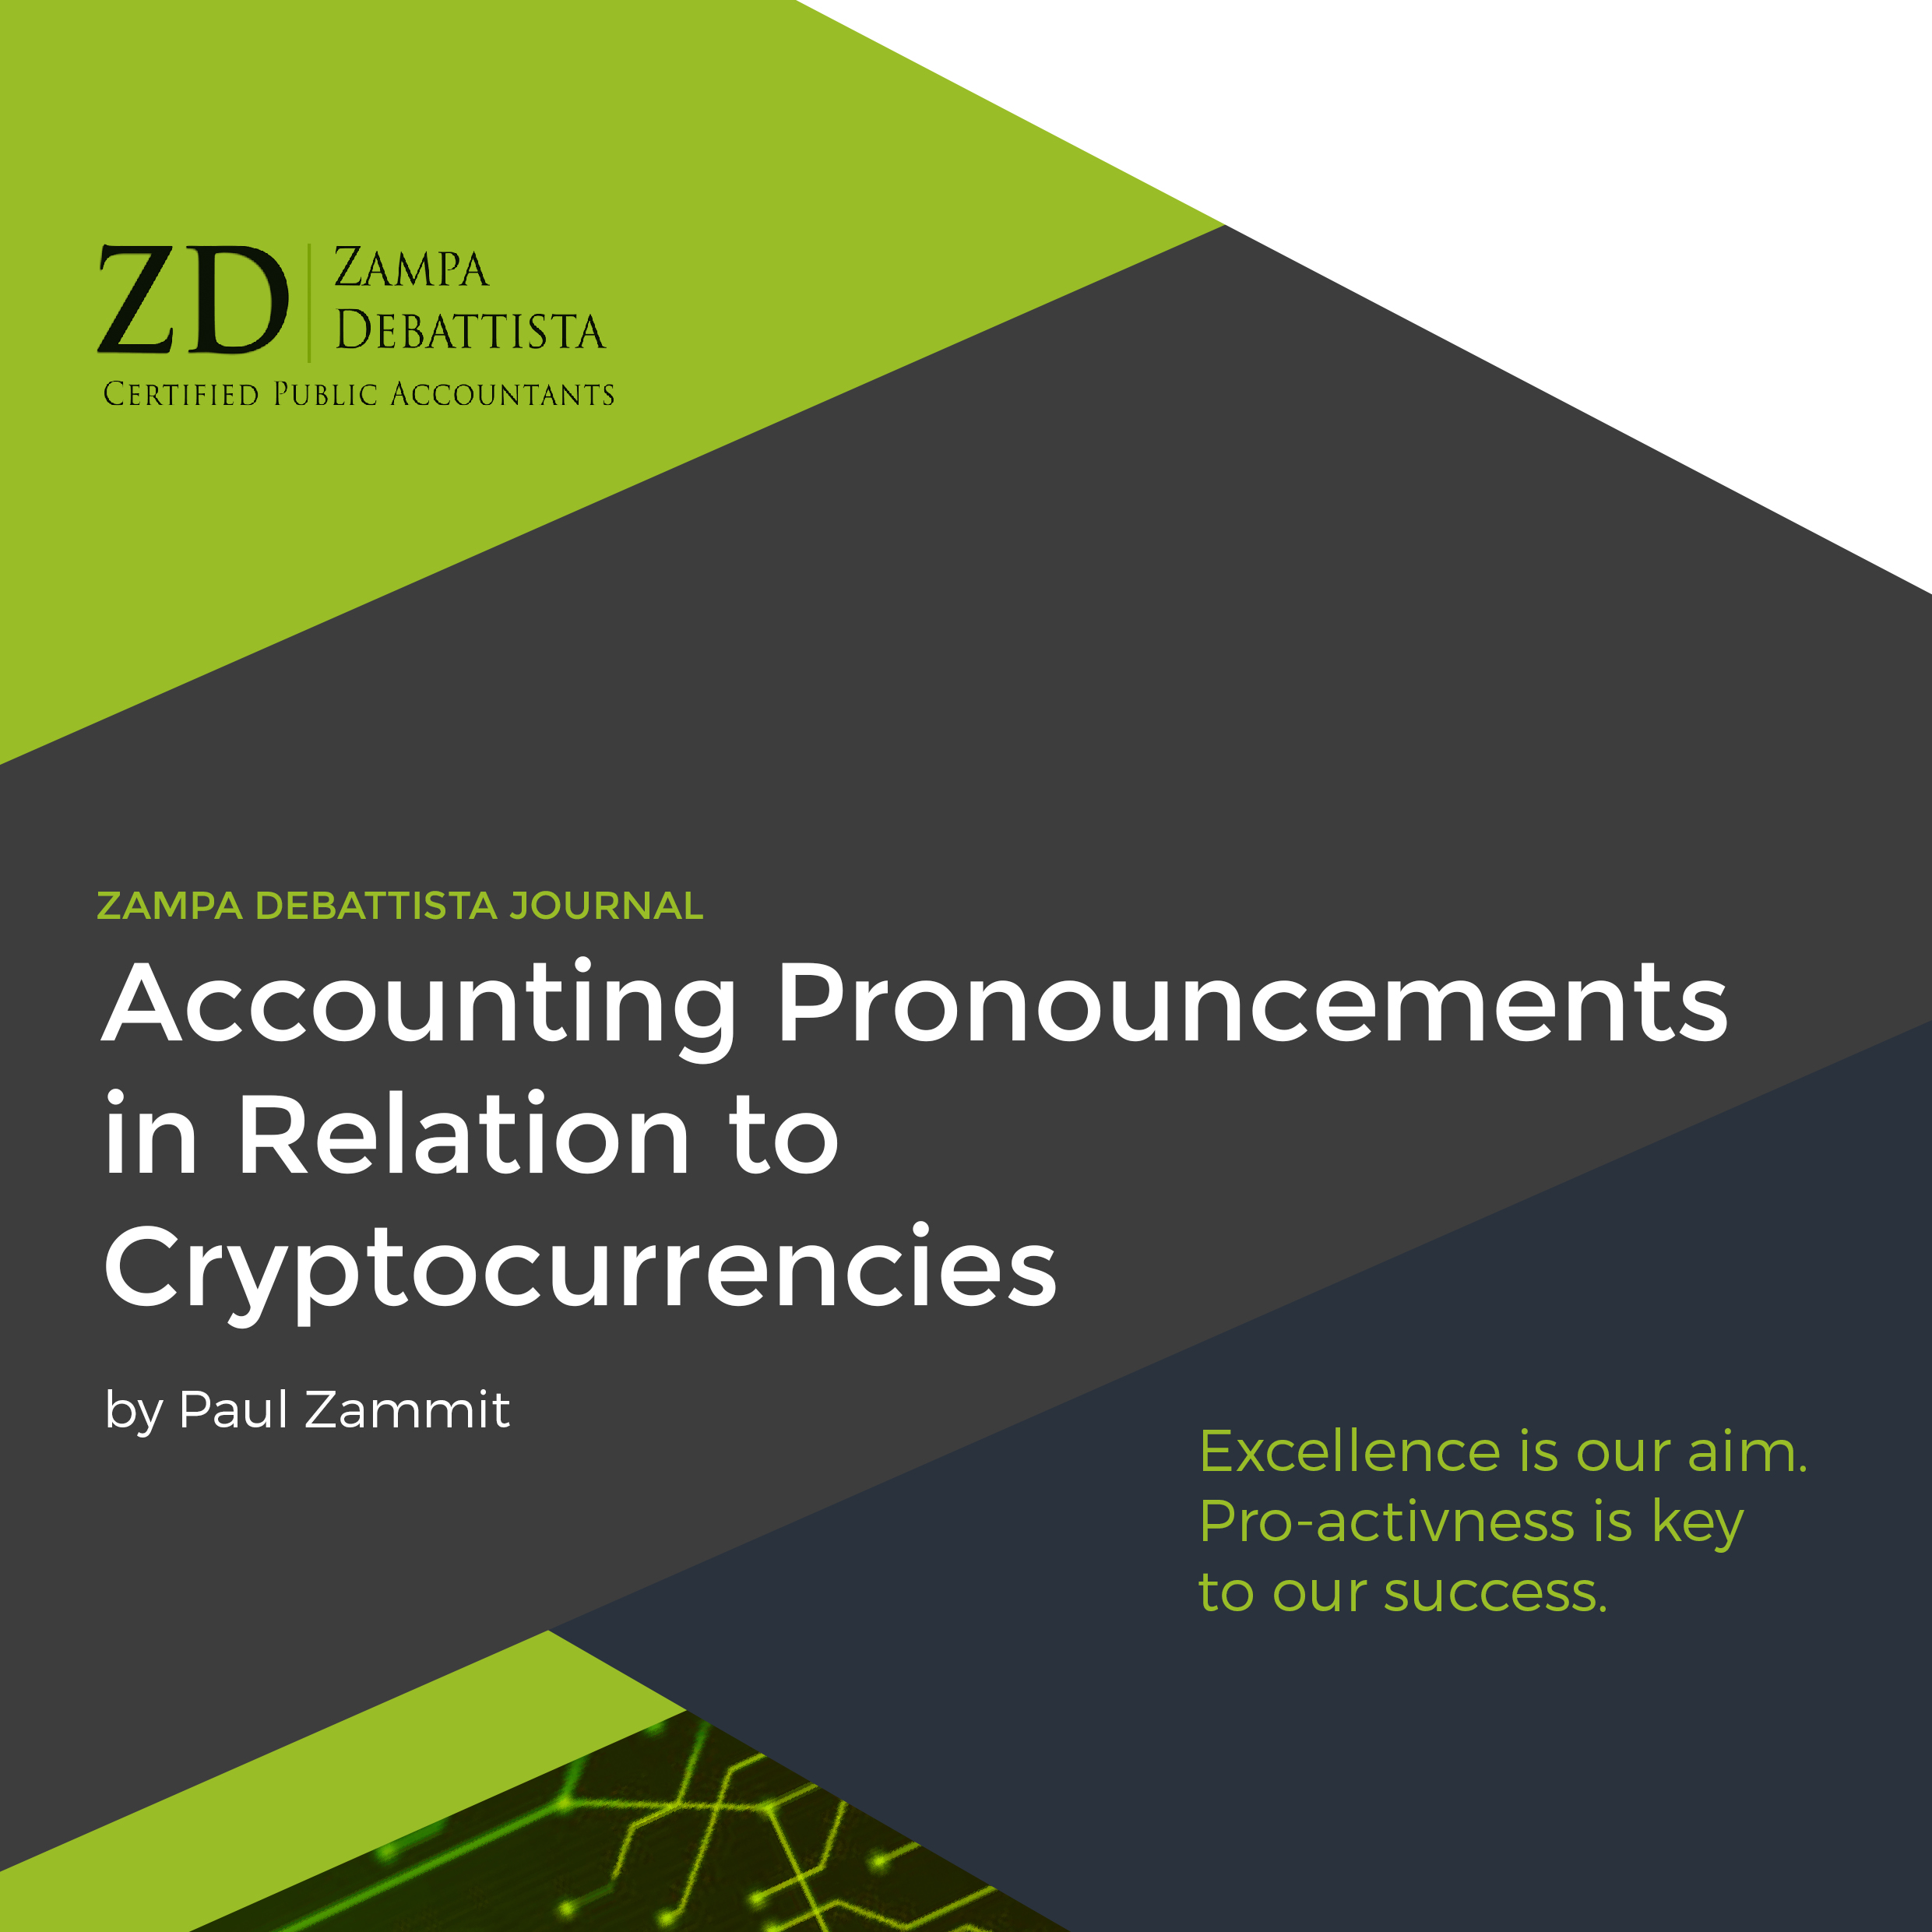 Accounting Pronouncements in Relation to Cryptocurrencies